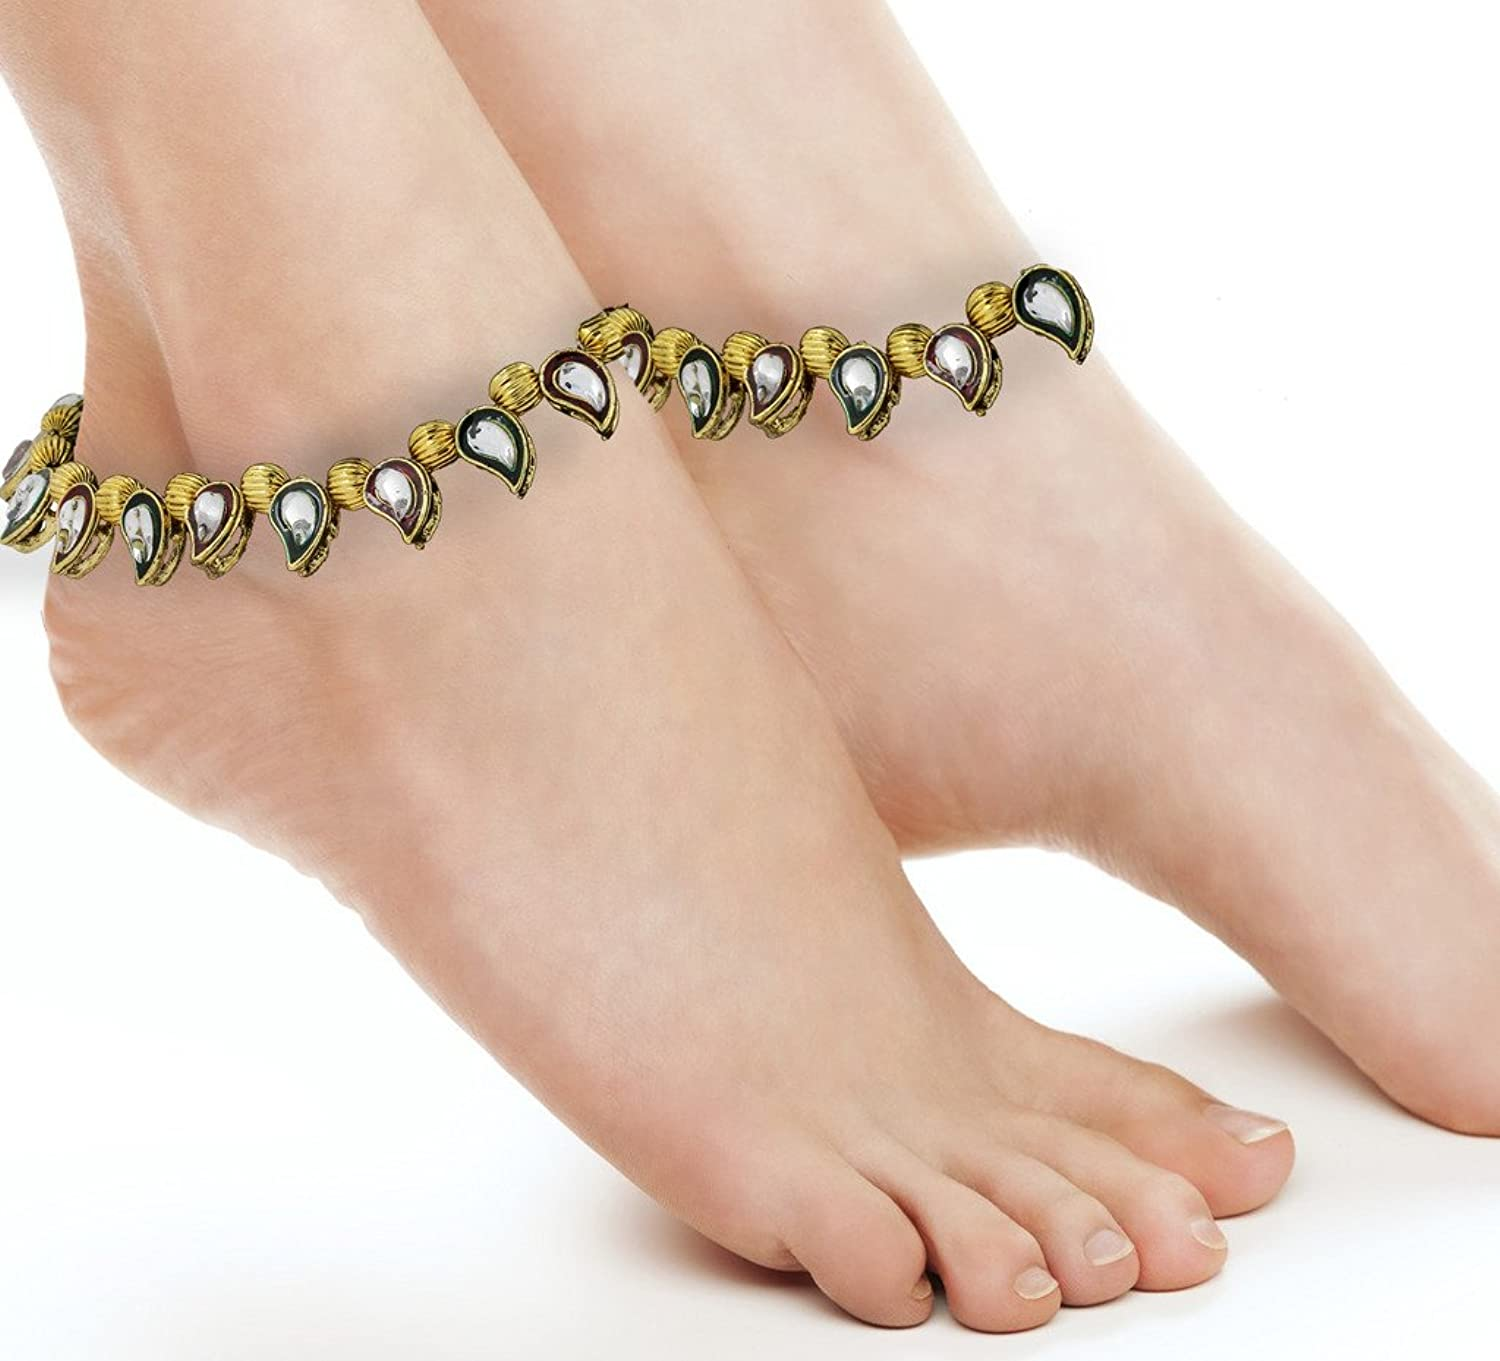 locking gold o products pearl day in rose collar heavy delicate or dainty chain of ring silver mg bdsm anklet